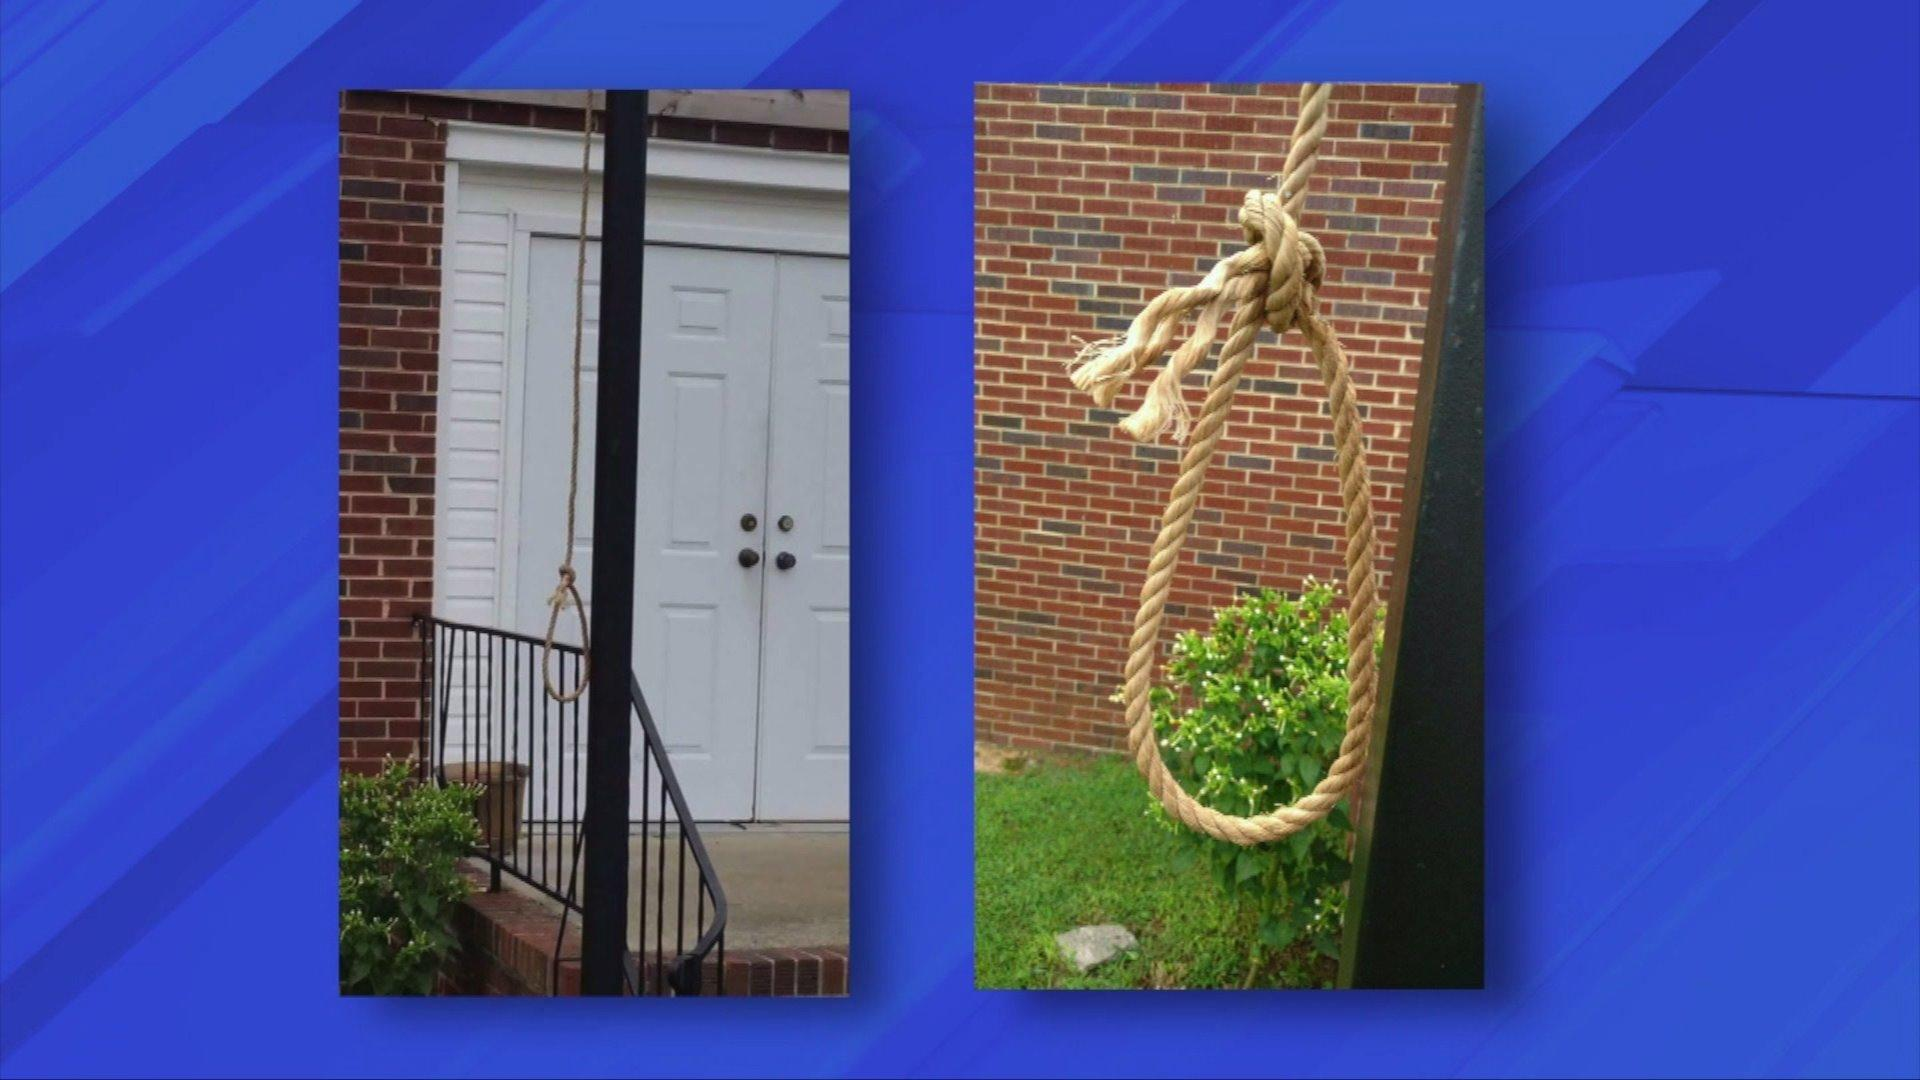 Noose Found at Alabama Church Being Treated as Threatening Hate Crime, Sheriff Says